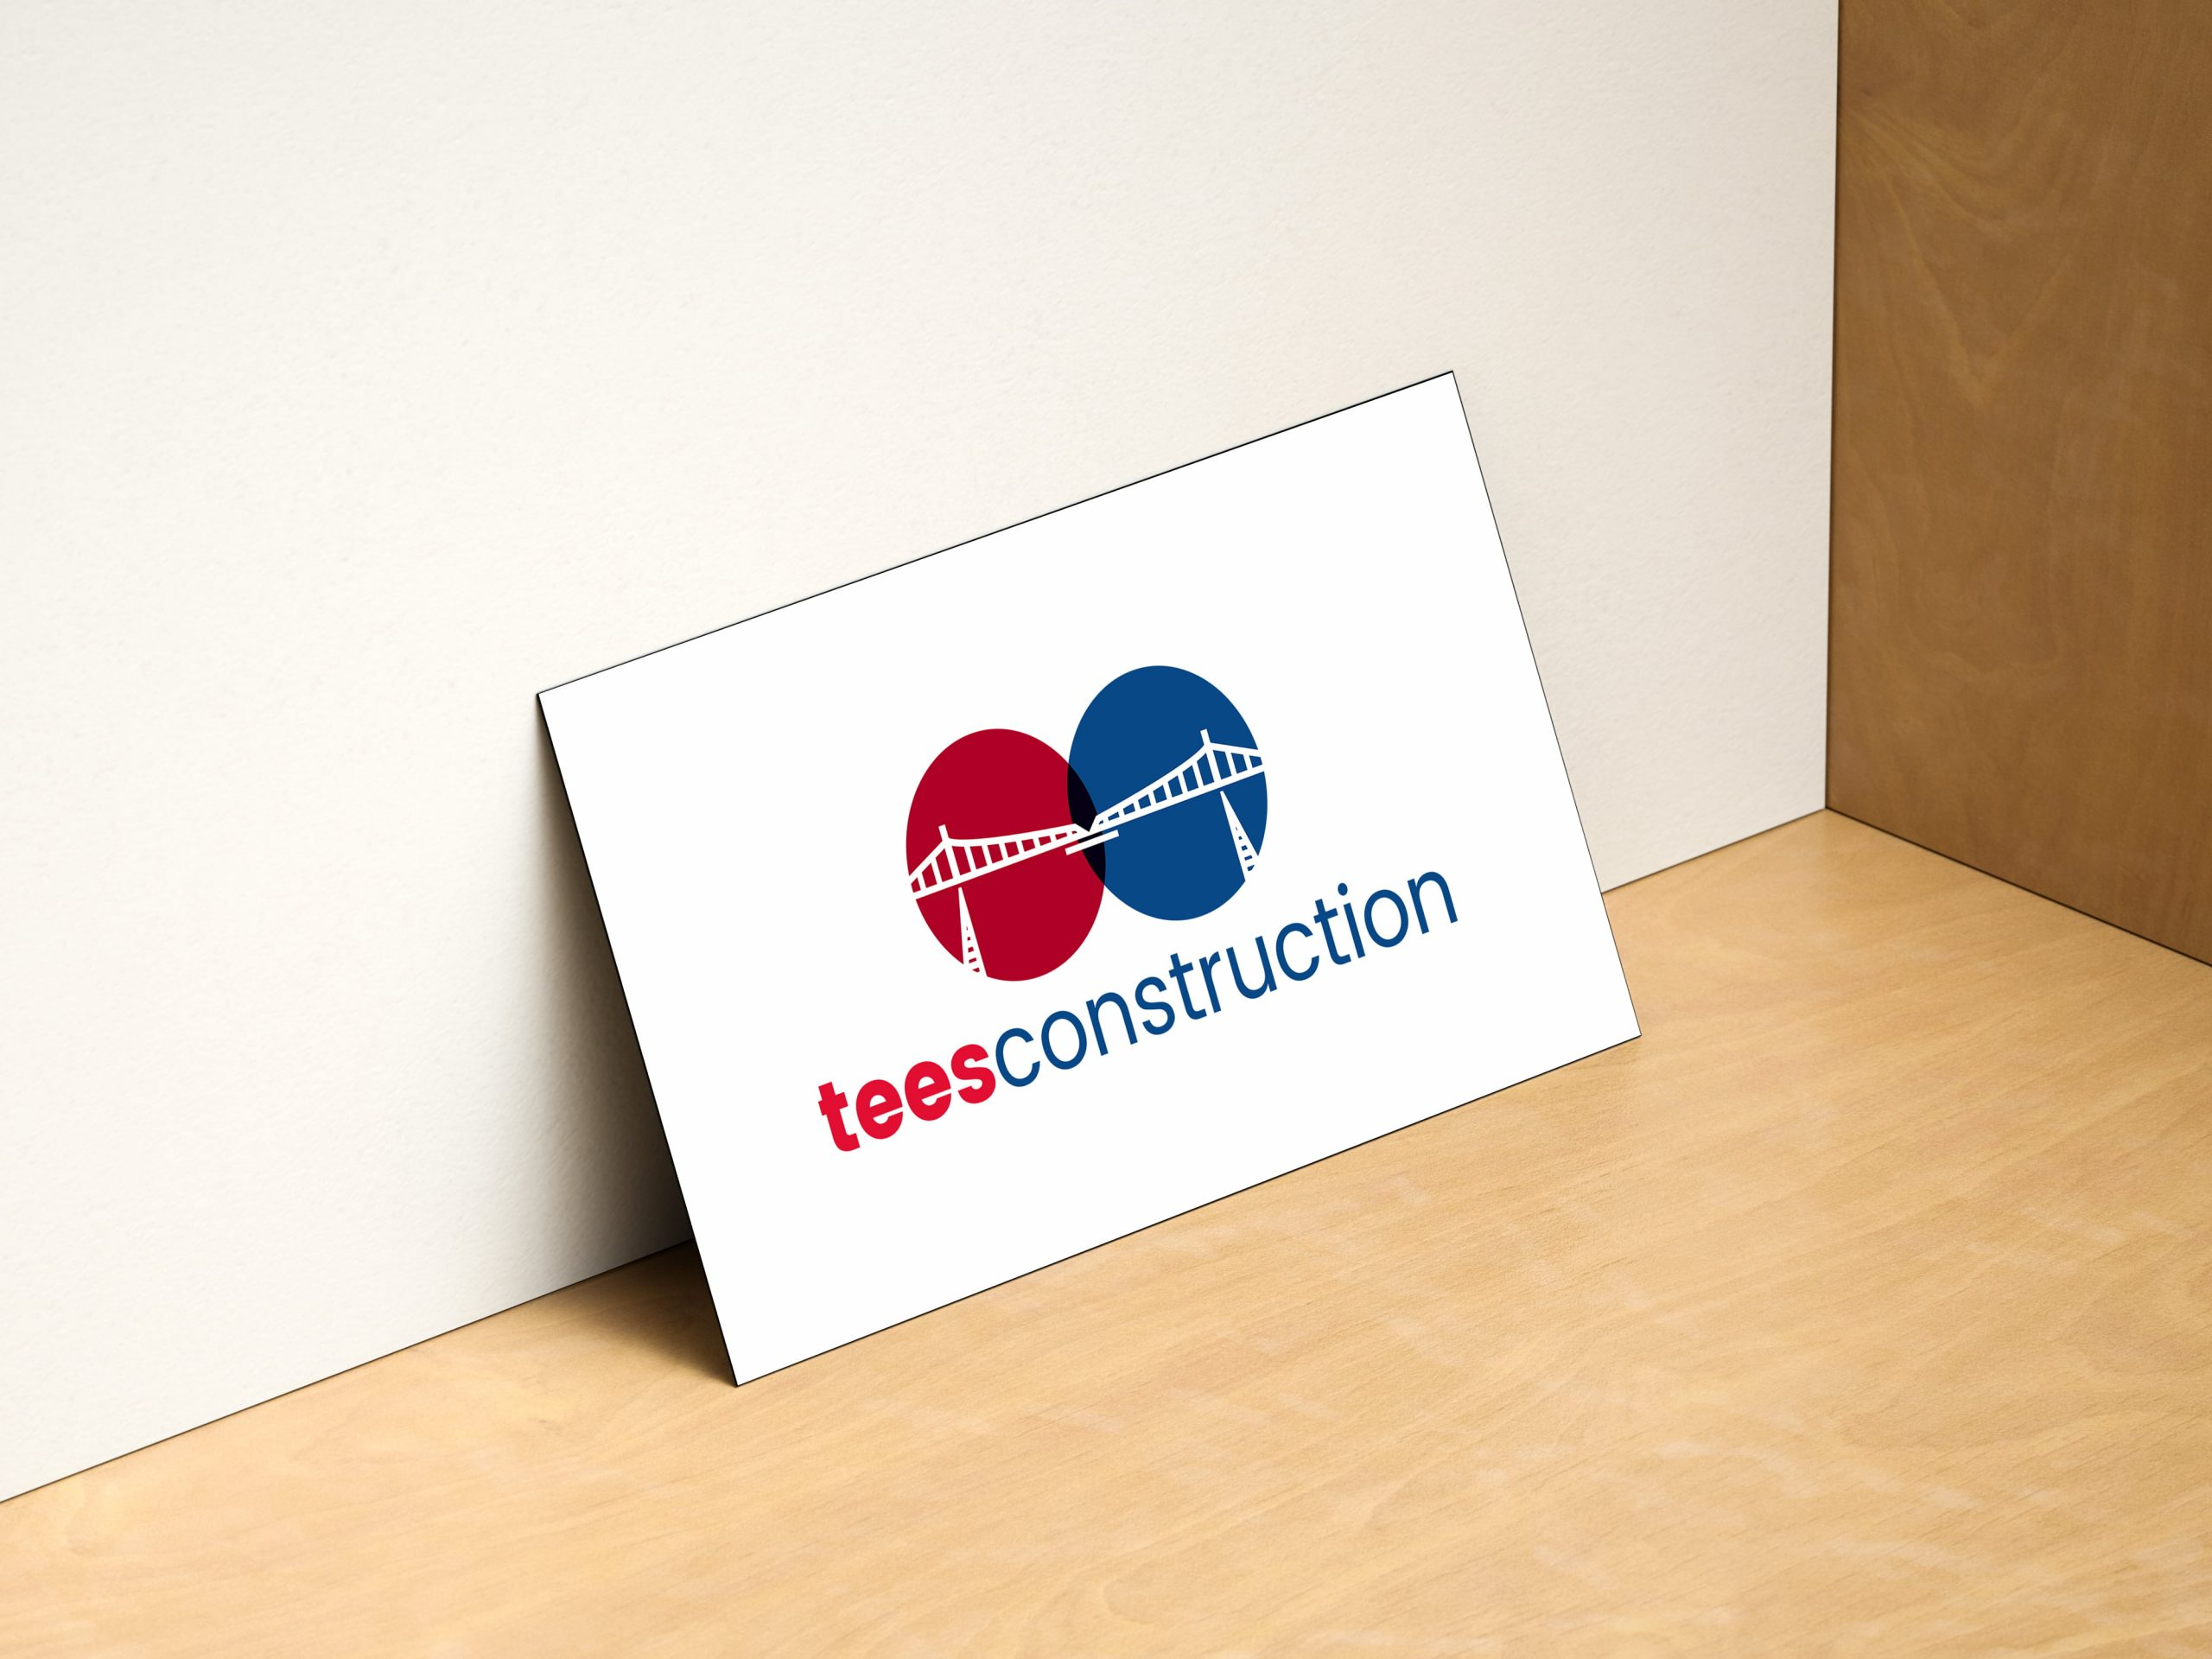 Tees Construction logo displayed on card